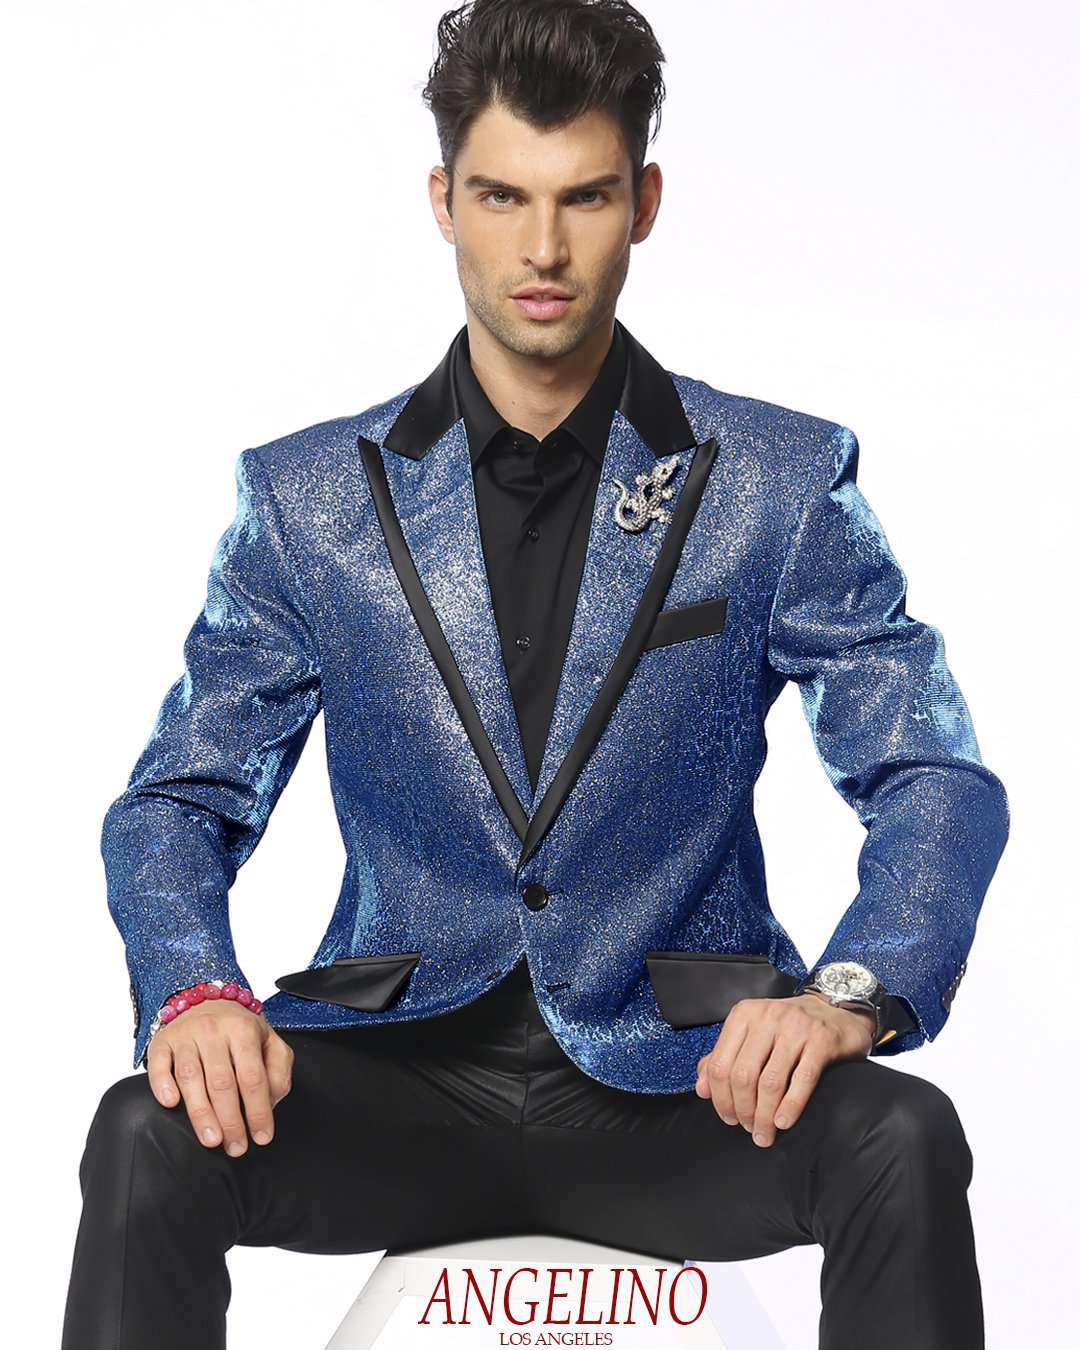 Blazer for men, Lucio Blue - Tuxedo - prom - Wedding